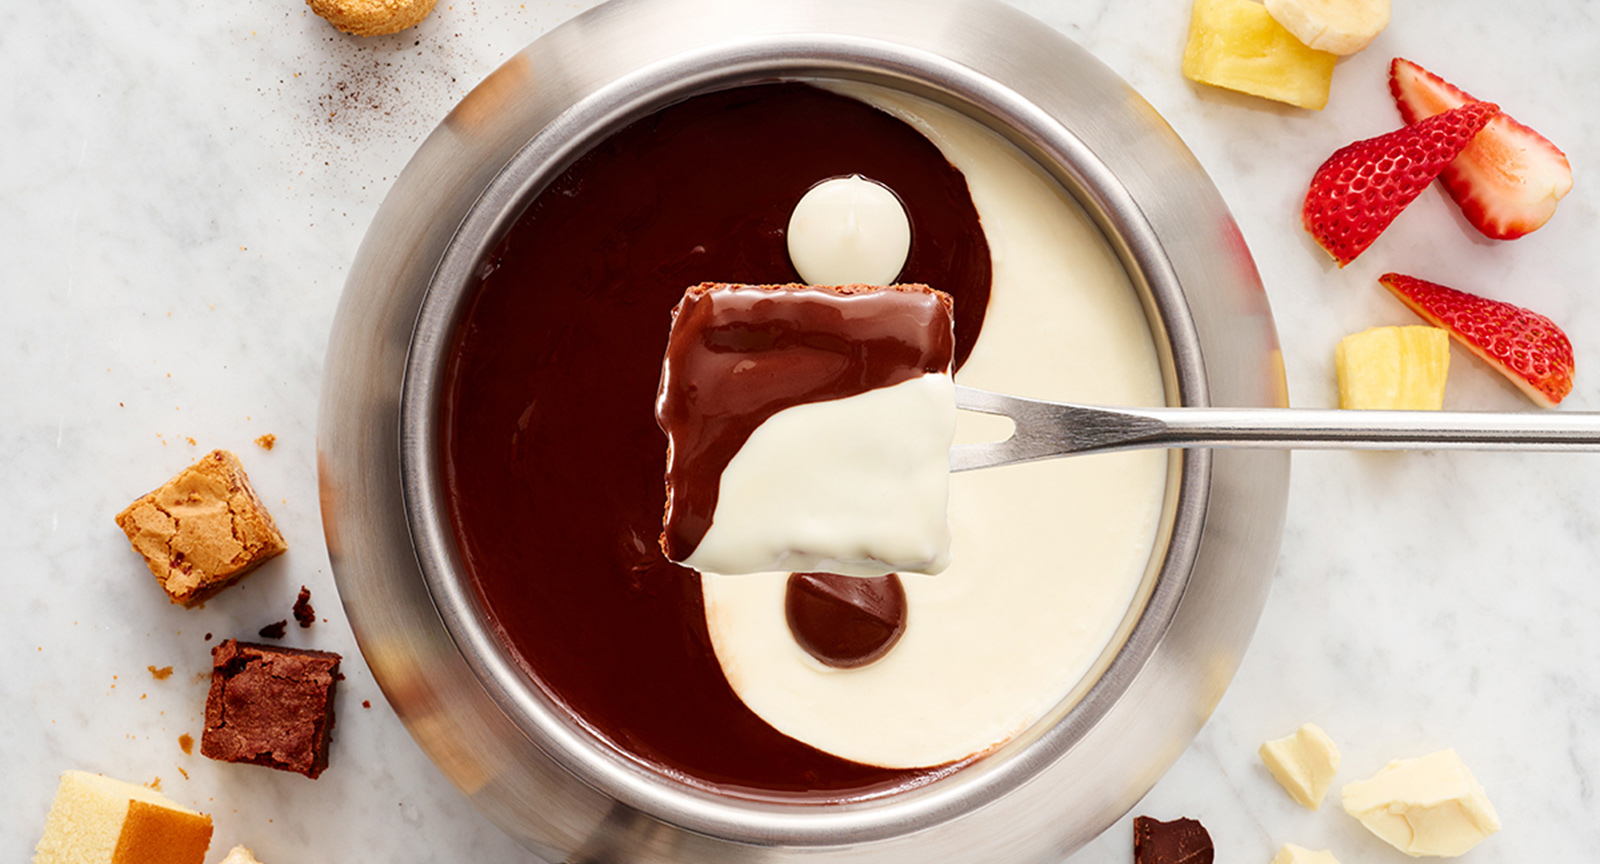 Yin and Yang Chocolate Fondue on Table